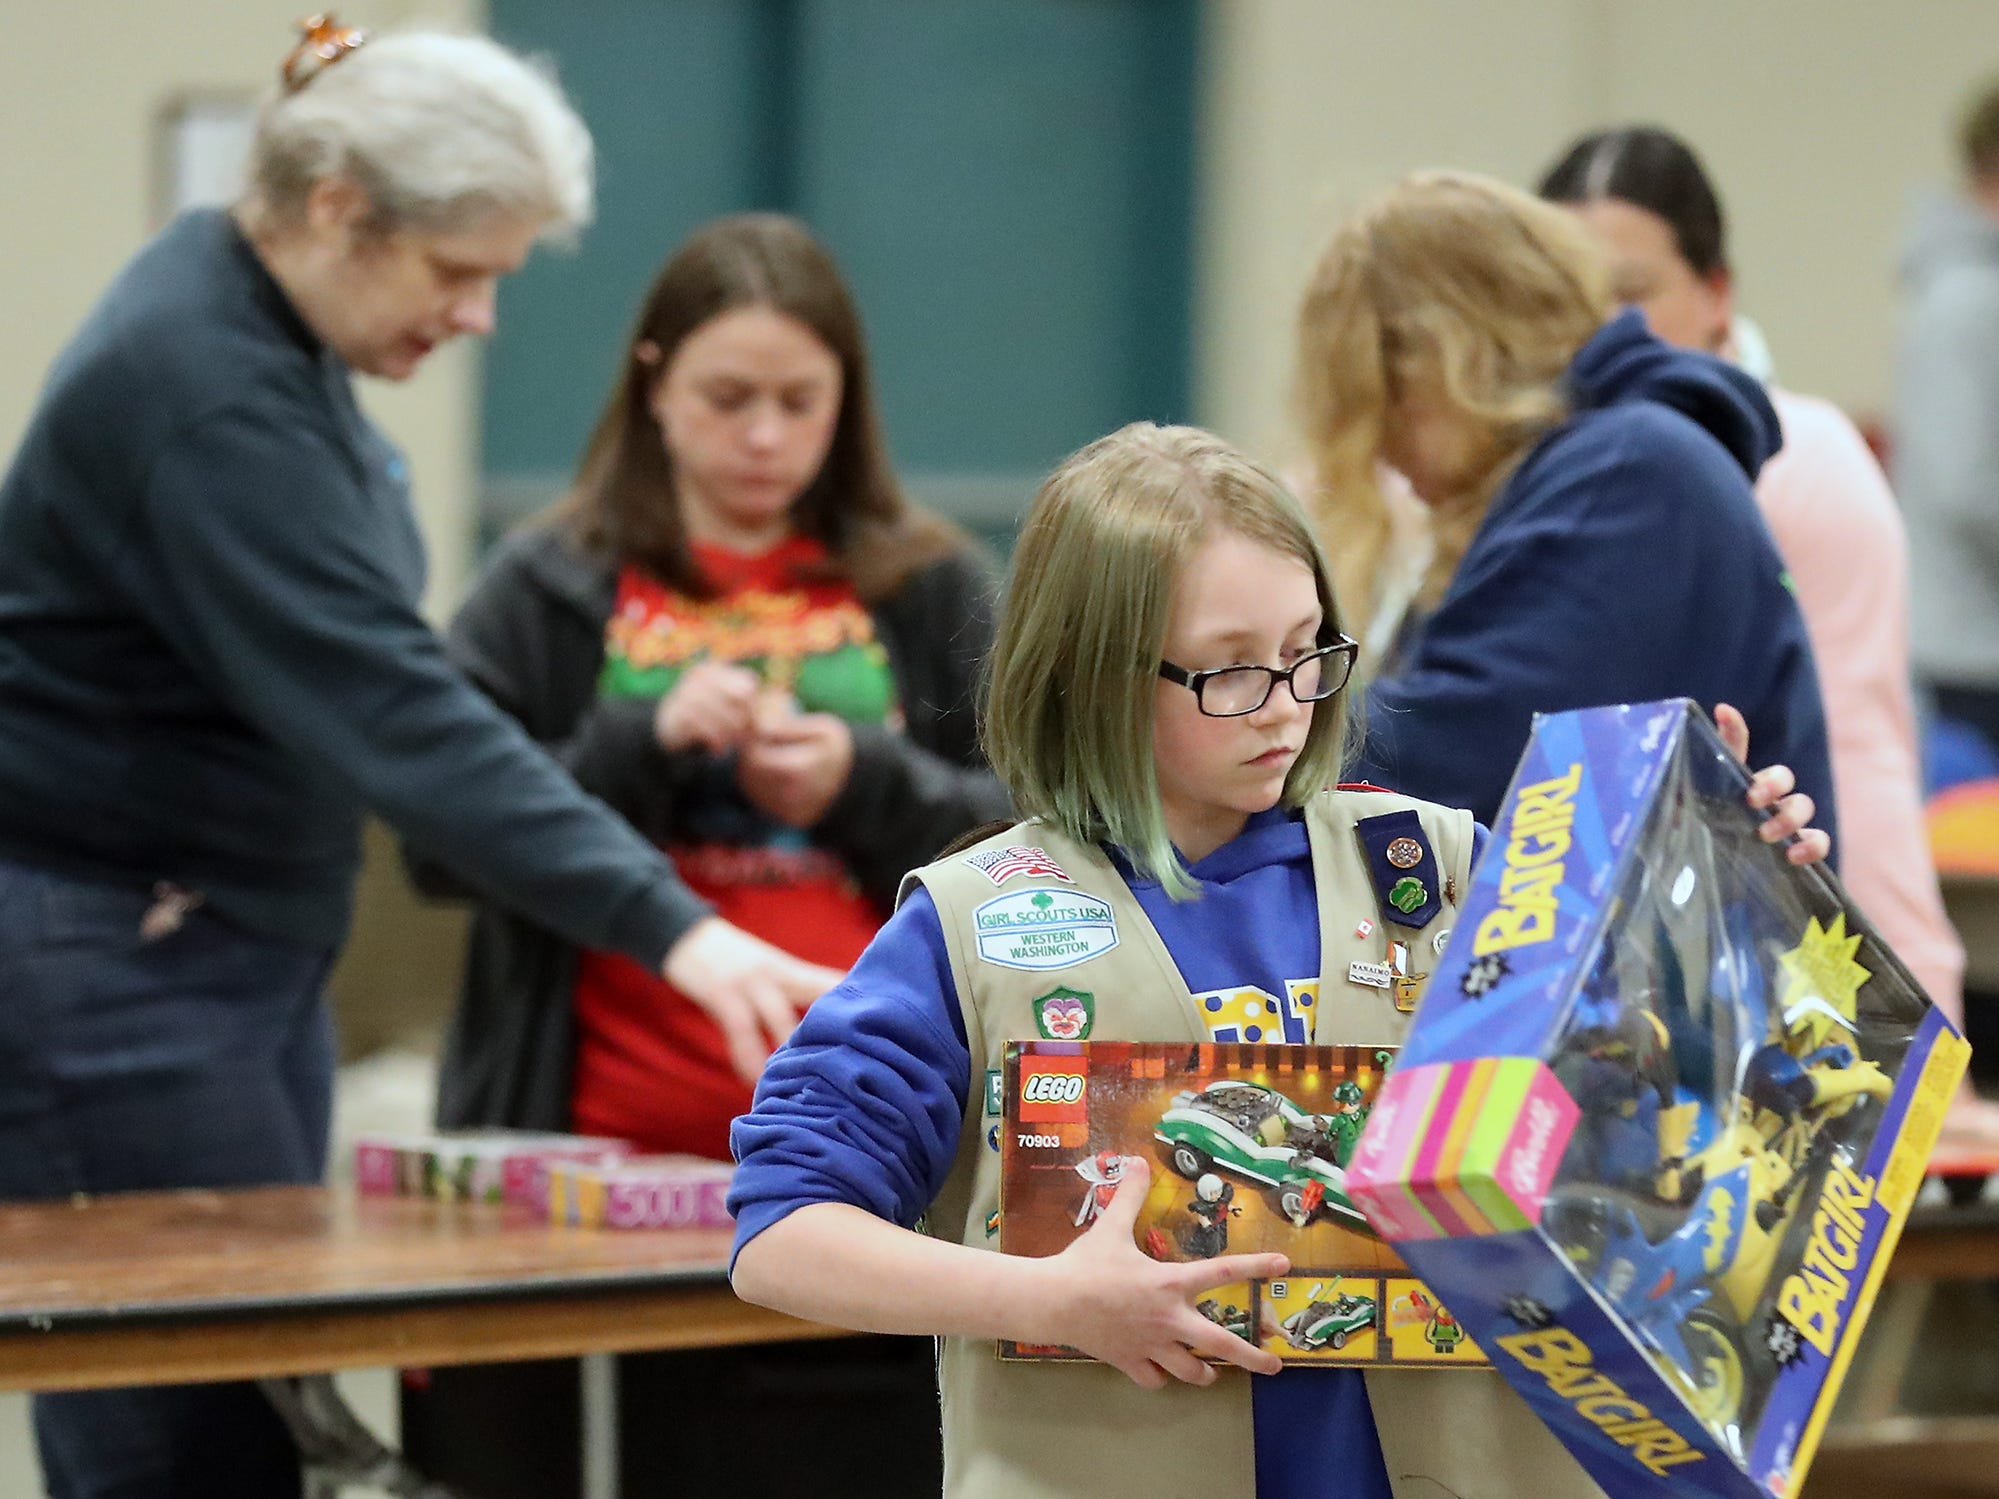 Girl Scout Rebecca Bolton, 12, carries a couple of newly sorted toys to the tables as she helps set up for the upcoming Toys For Tots event in President's Hall at the Kitsap County Fairgrounds on Wednesday, December 12, 2018.